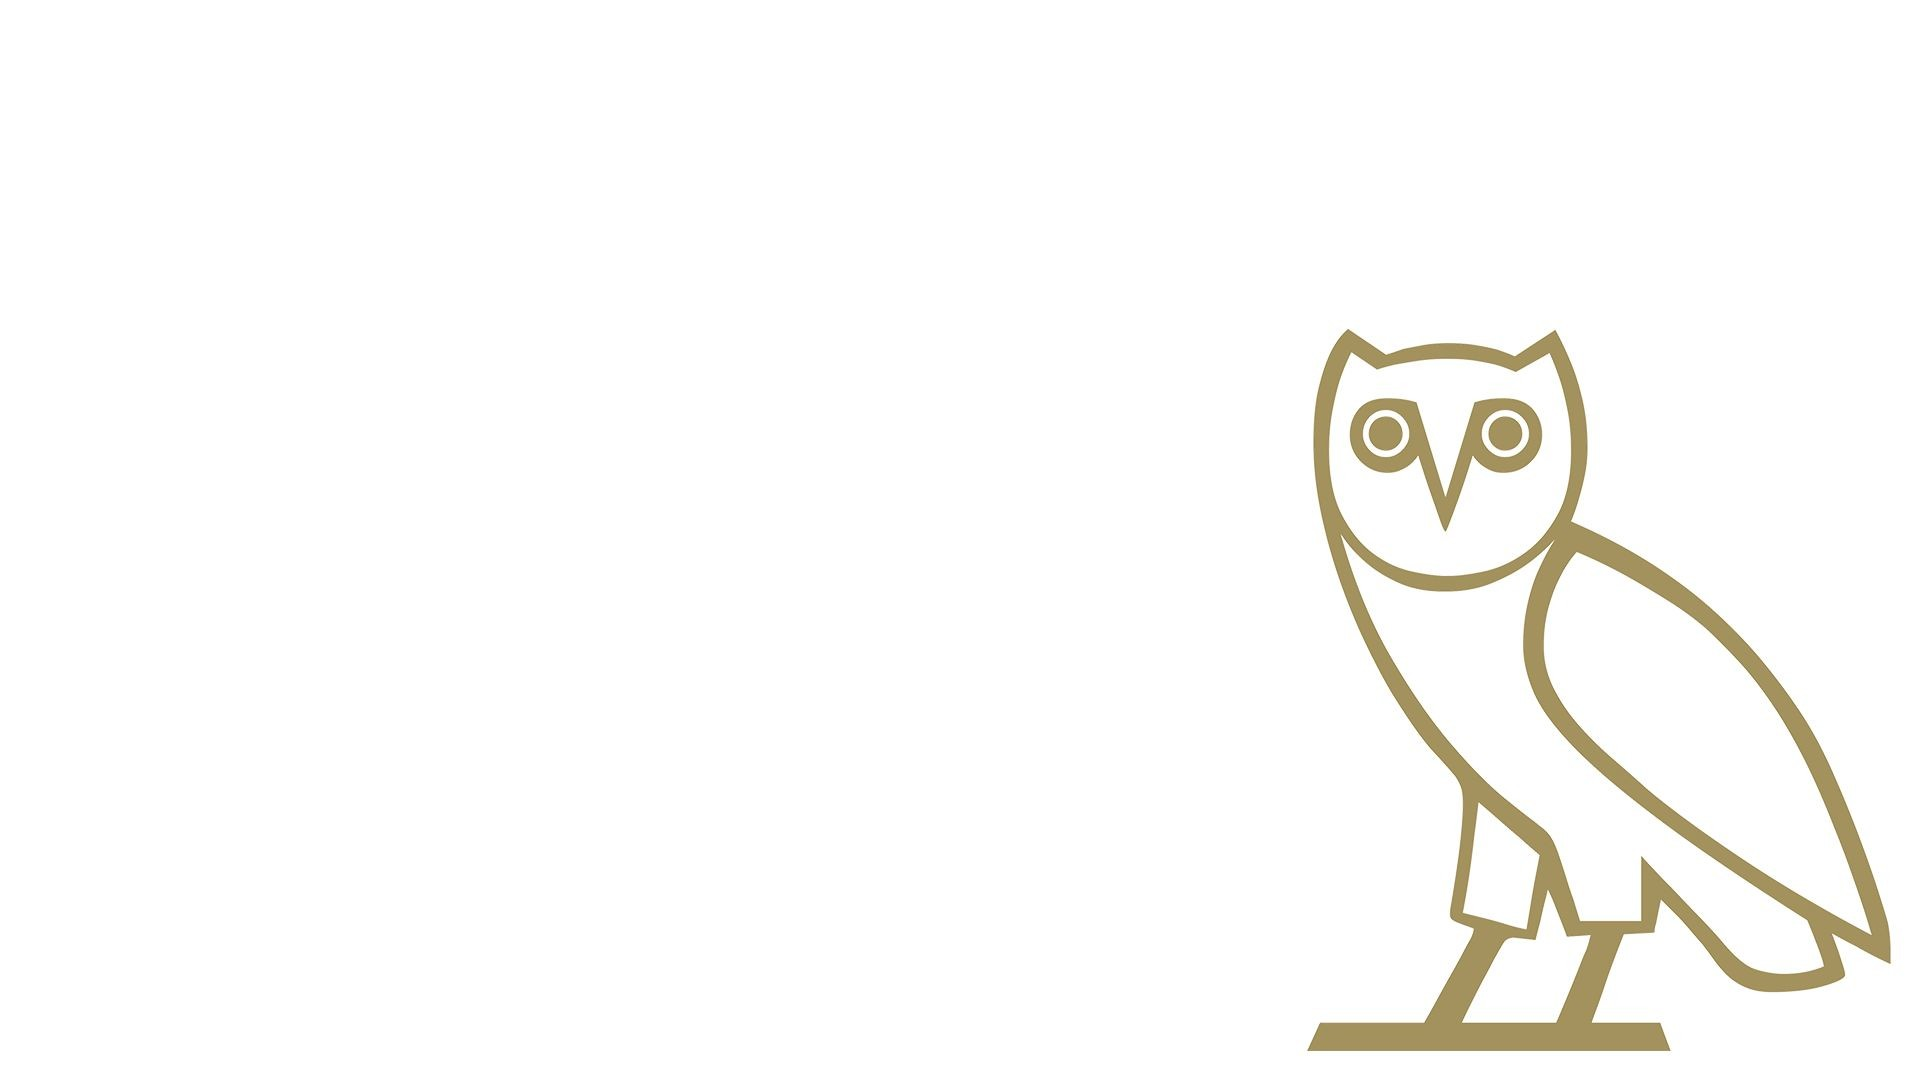 ovo owl iphone wallpaper – photo #3. Lakers Wallpapers and Infographics Los  Angeles Lakers